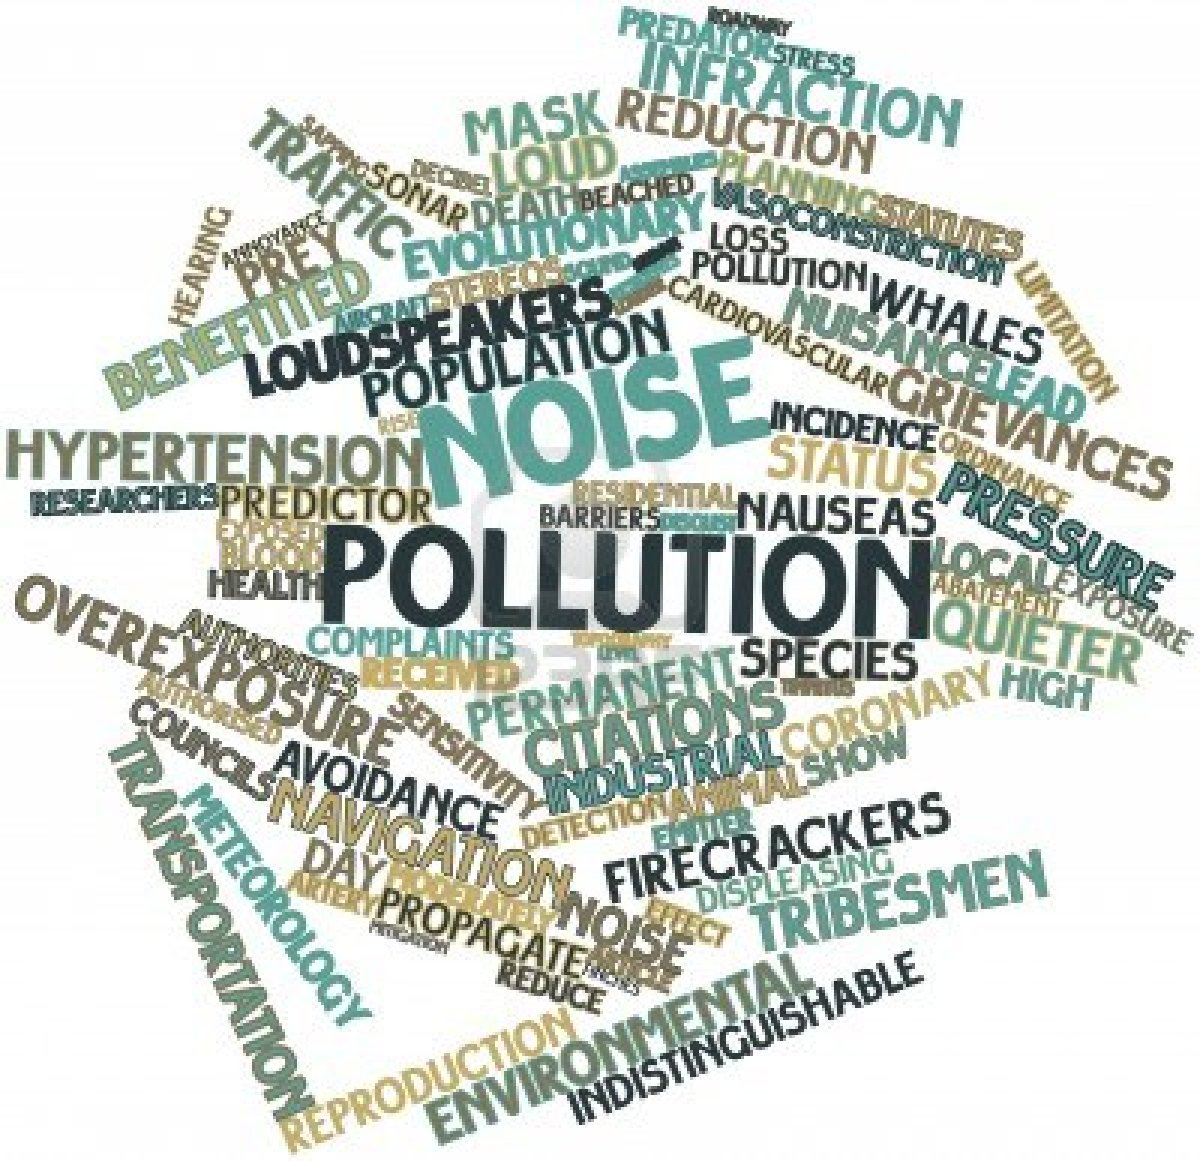 Bibliography on Noise Pollution